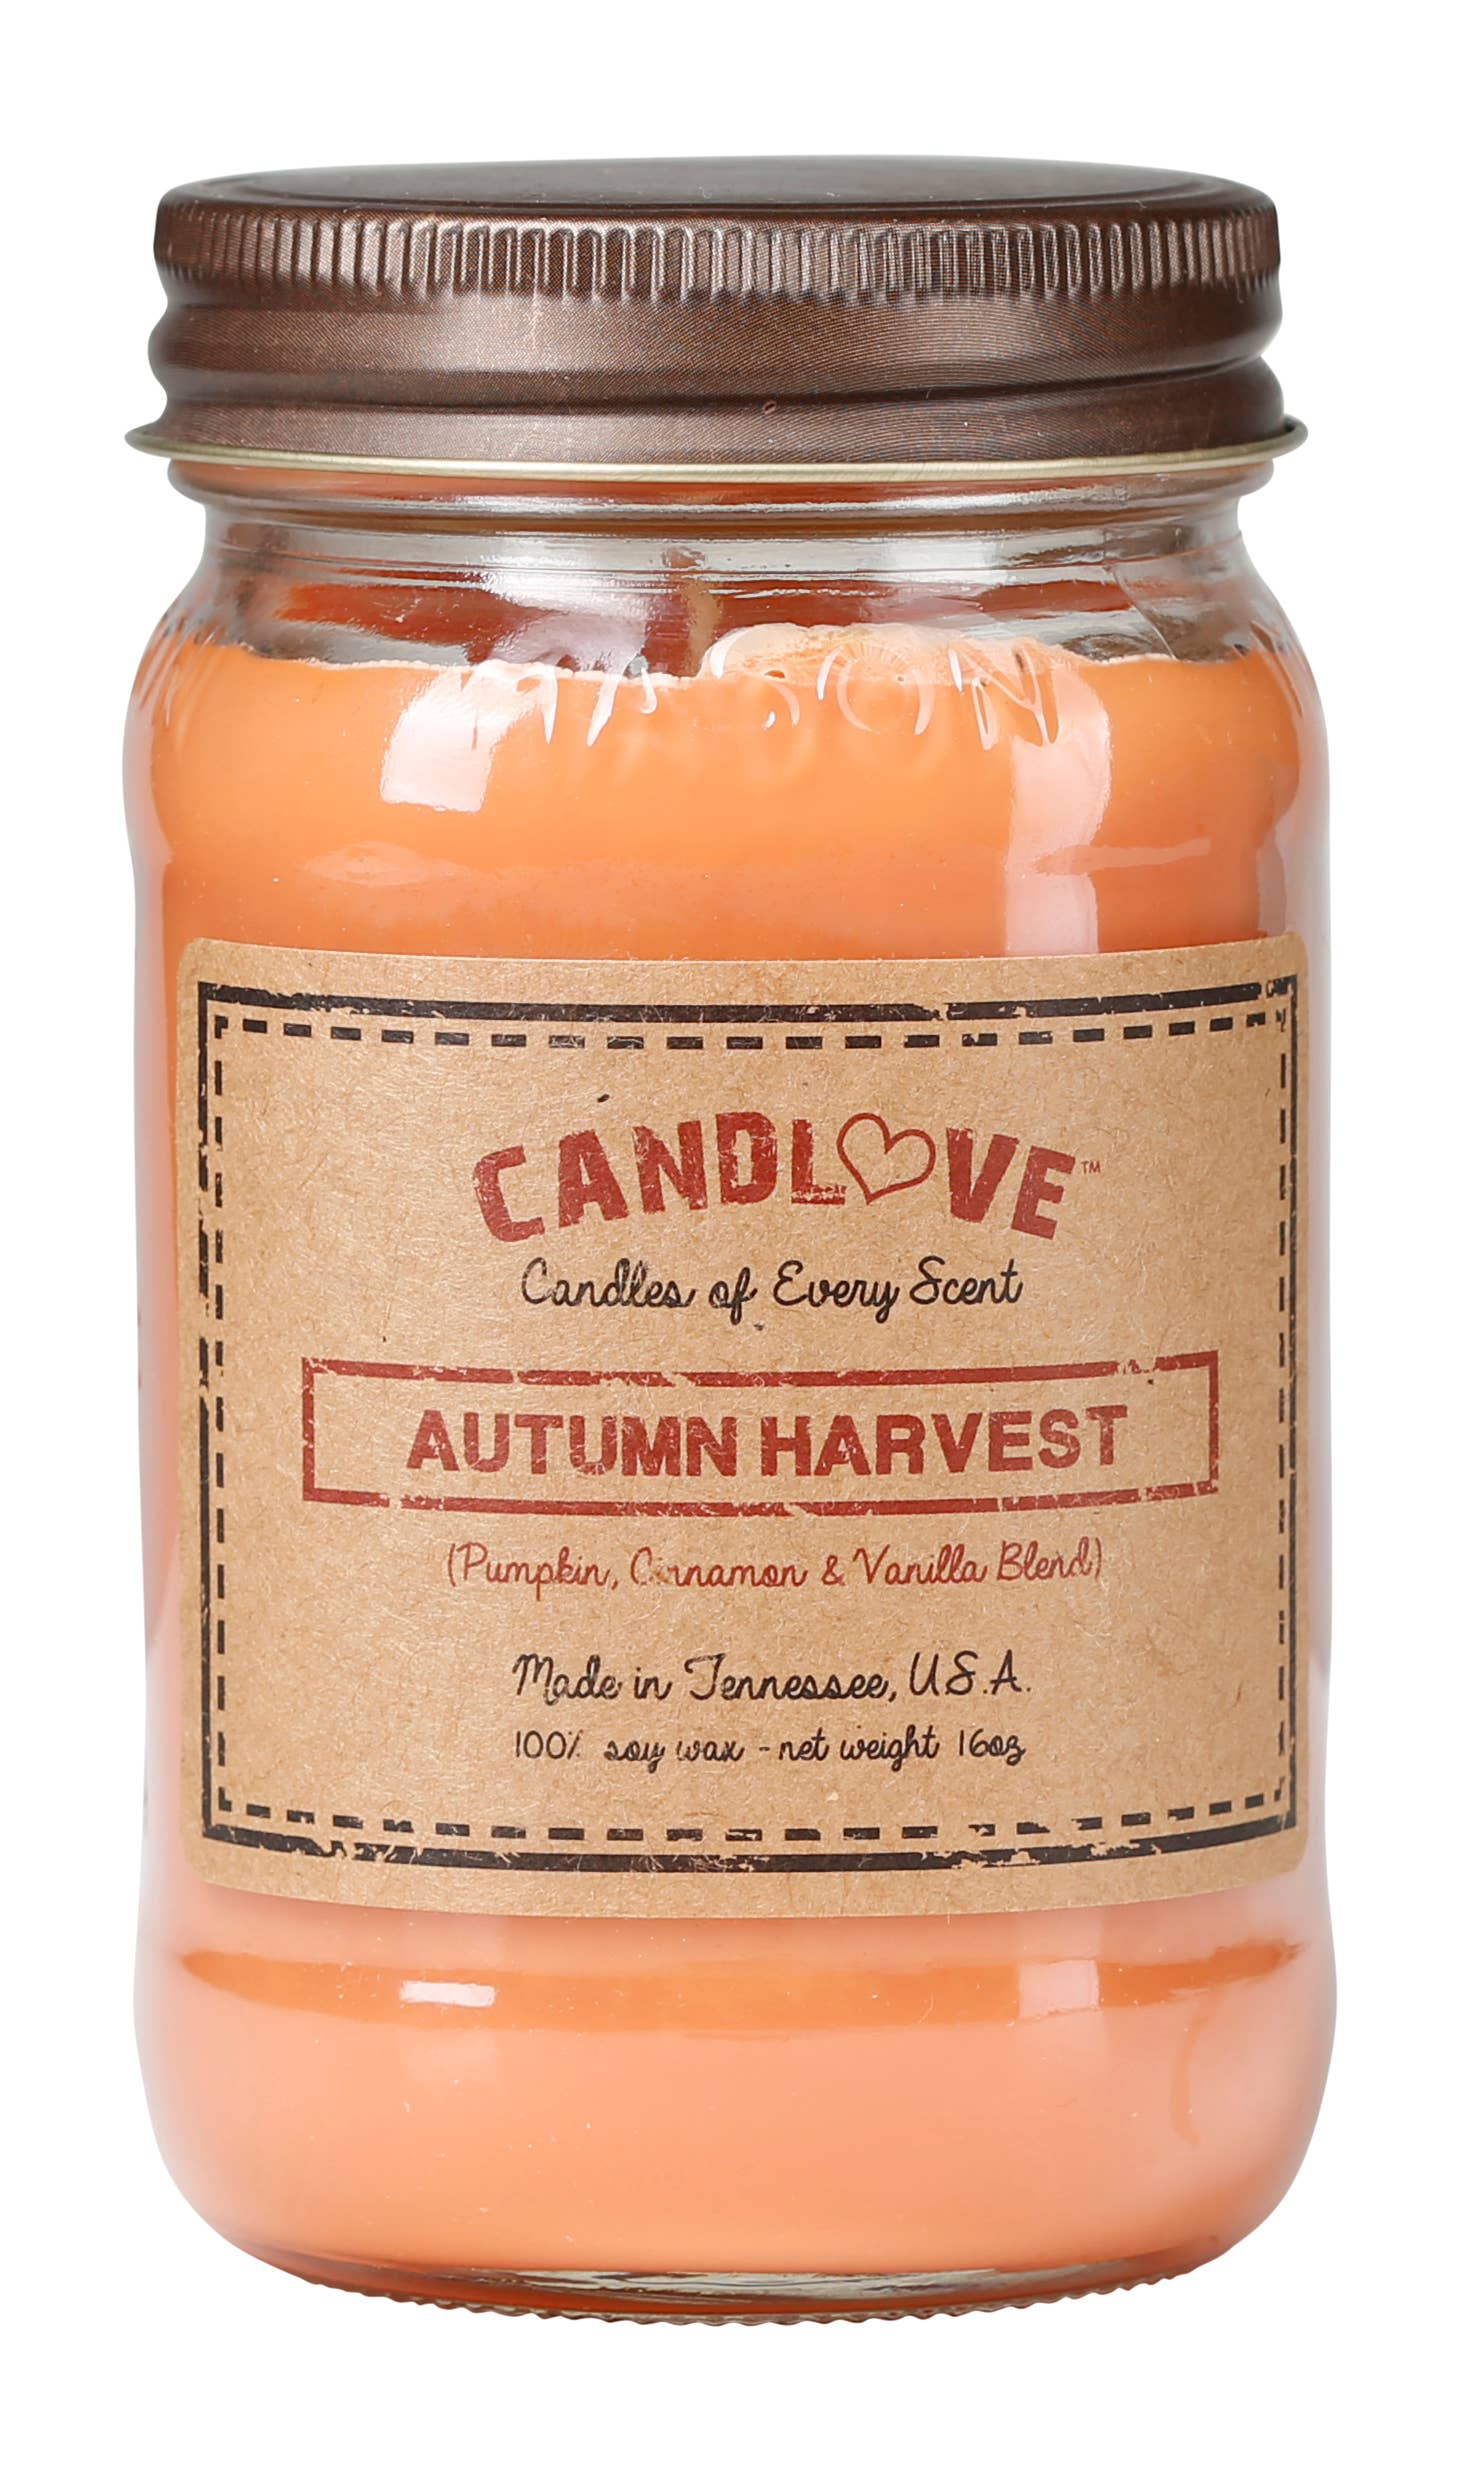 Soy Wax Scented Candle - Autumn Harvest